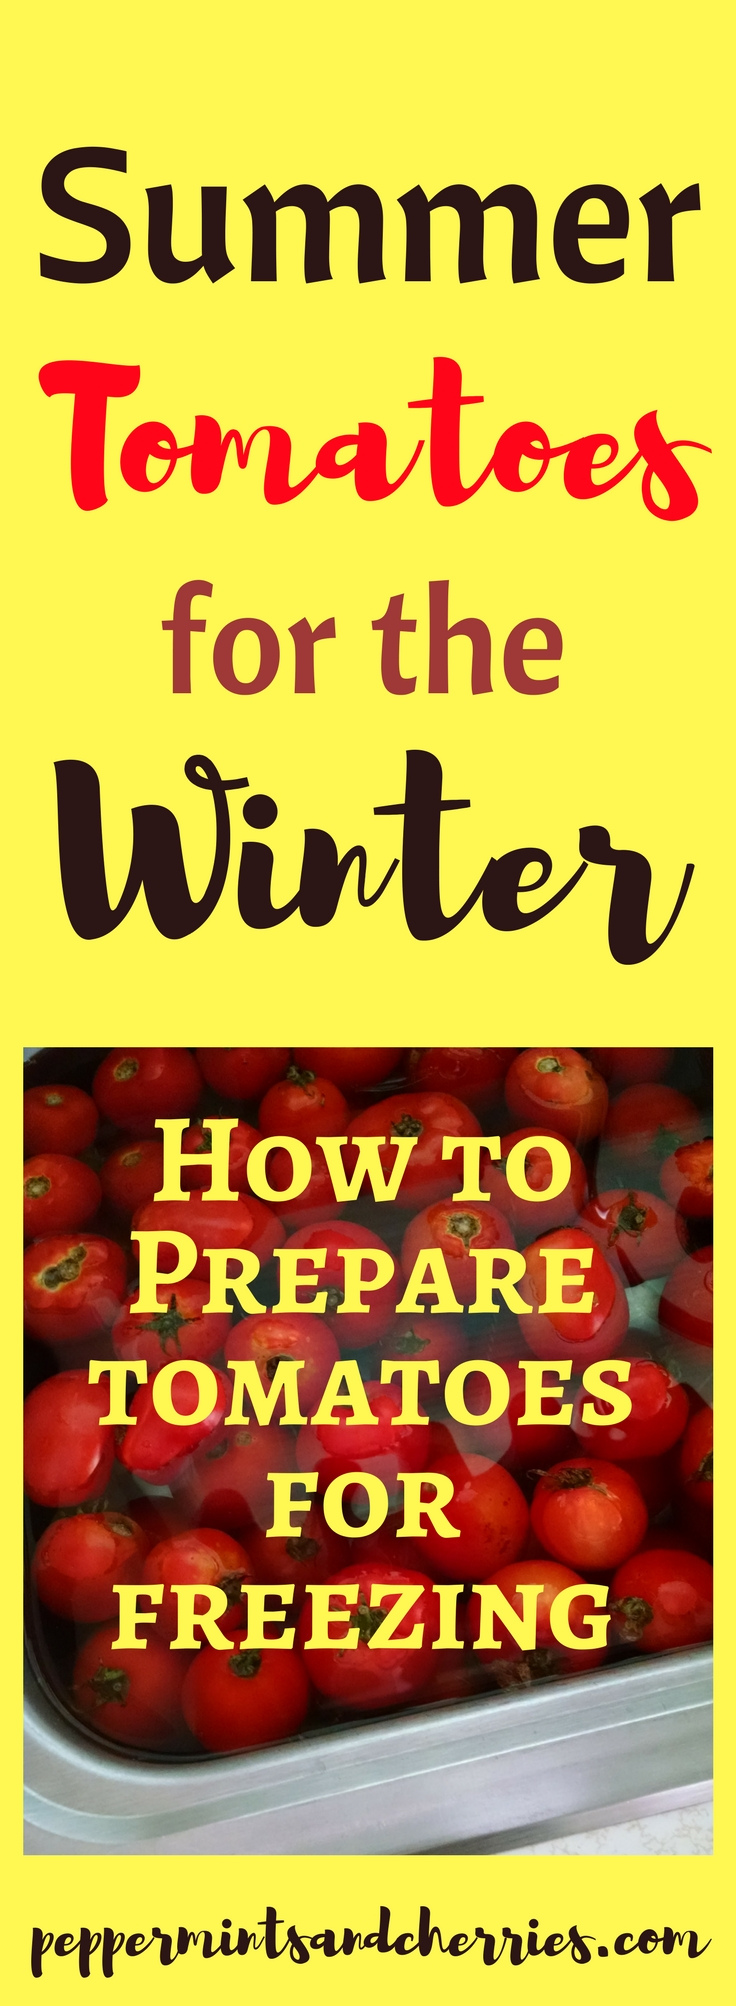 How to Prepare Tomatoes for Freezing